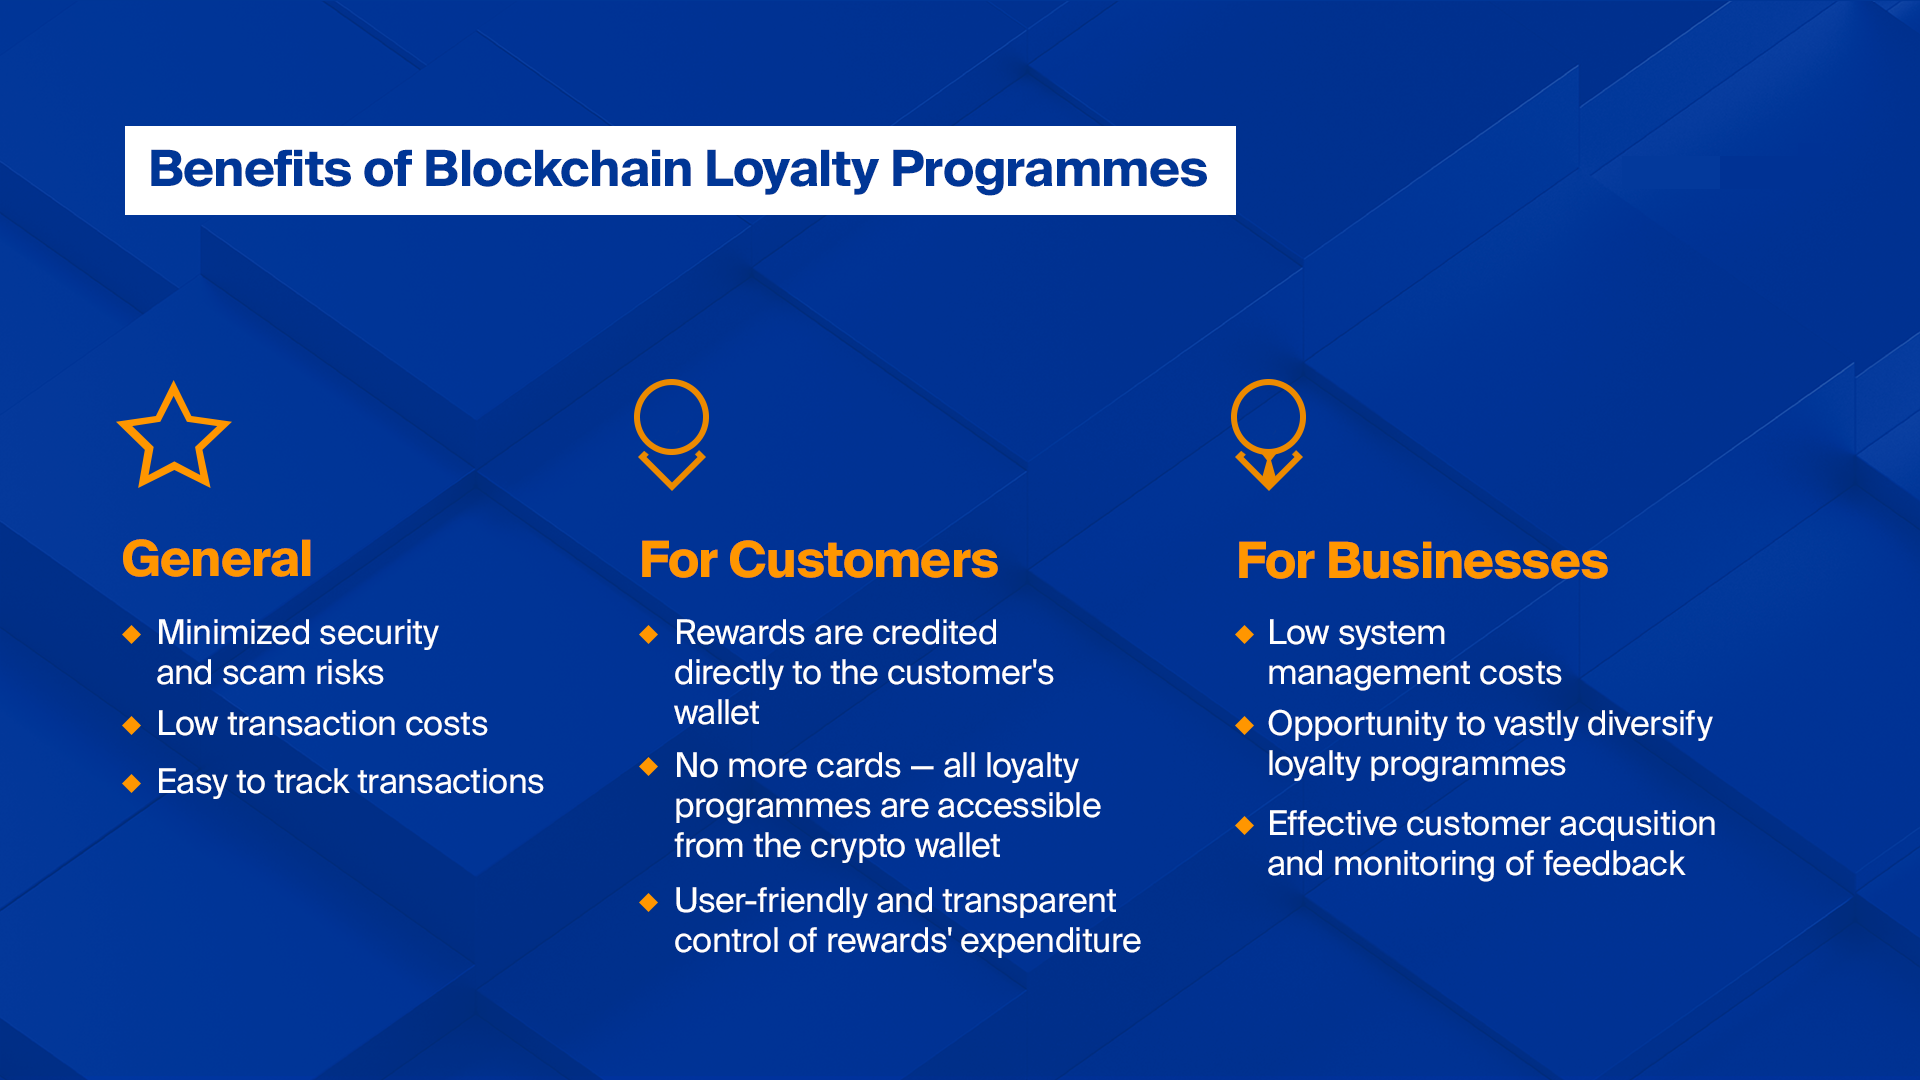 Benefits of Smart Loyalty Programs